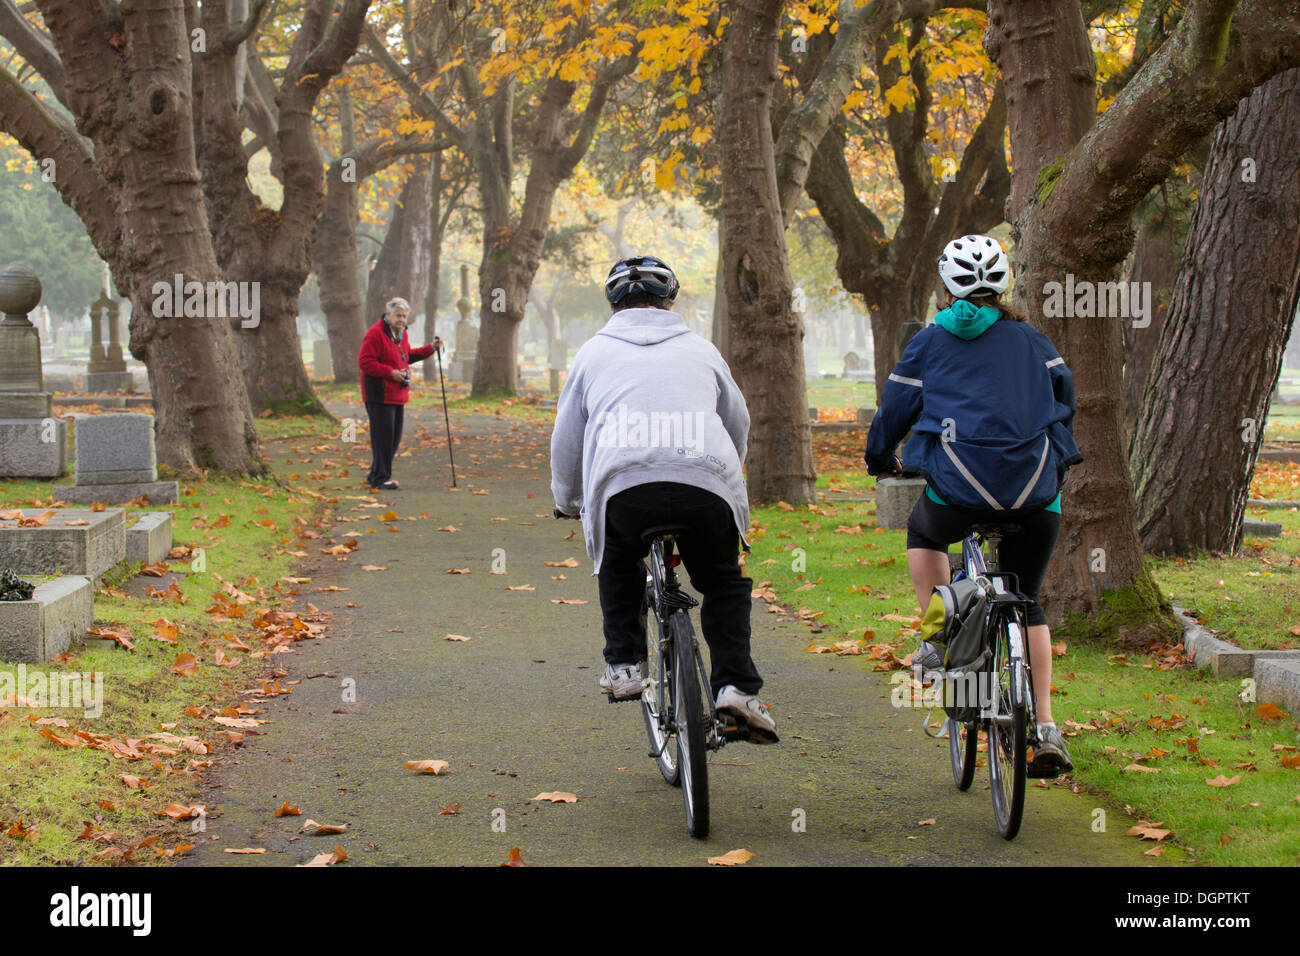 Bicyclists riding on path through Ross Bay cemetery in autumn -Victoria, British Columbia, Canada. - Stock Image